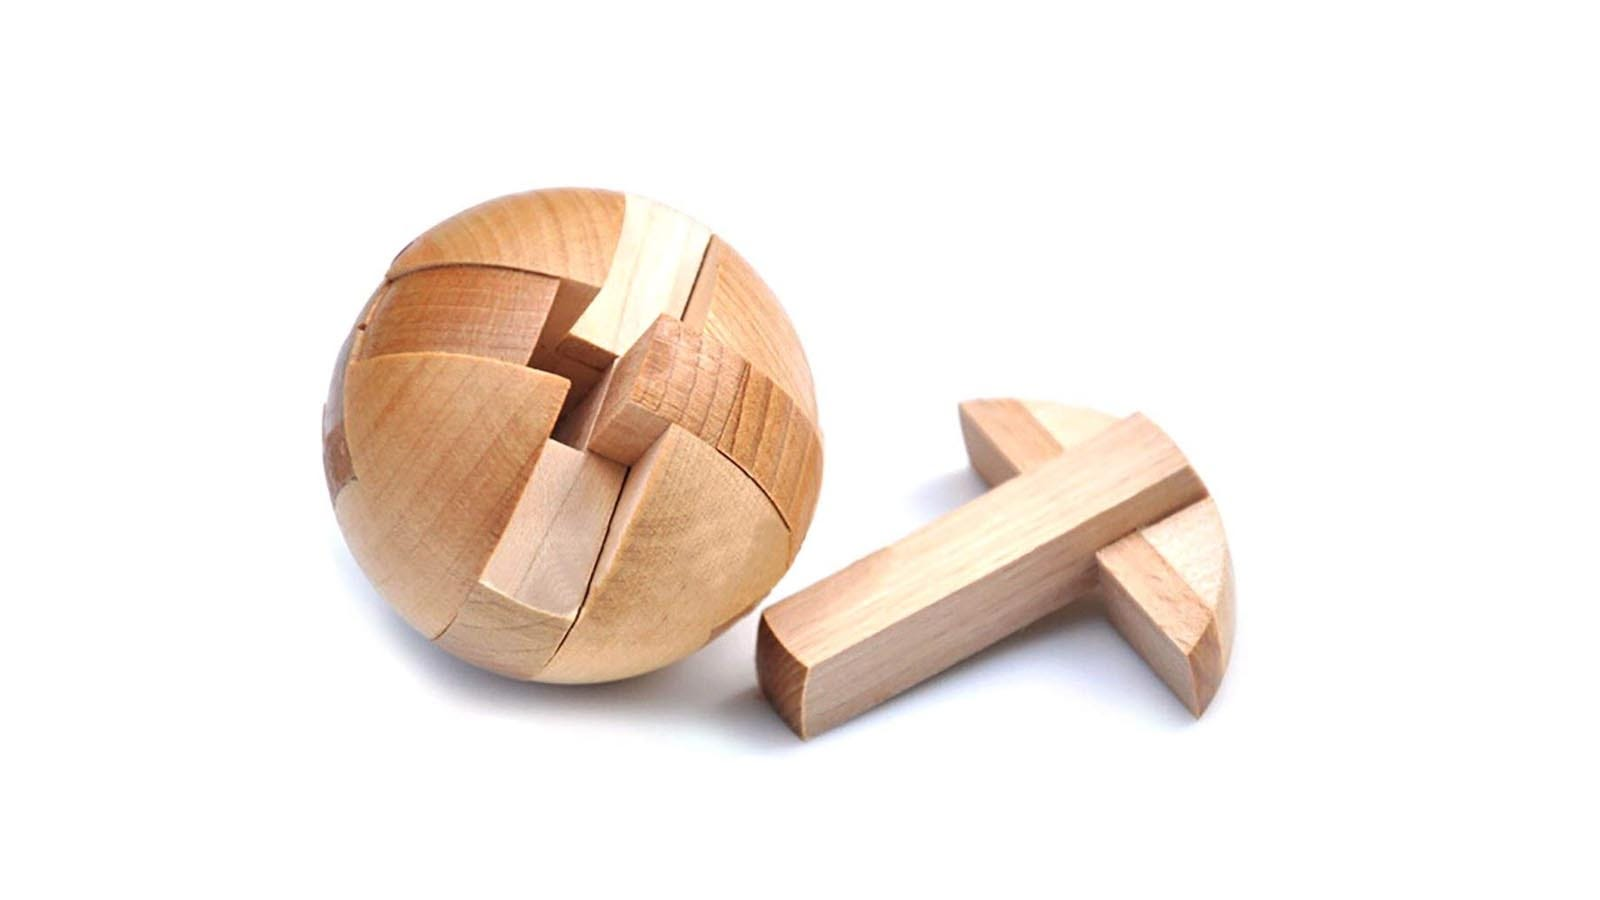 Jennifer Allen Smart Technology Guiye Frayo Official Web Site Stuff Circuit Bent Toys A True Brainteaser The Kingou Wooden Puzzle Magic Ball Isnt That Most People Will Solve Fast You Have To Piece Shapes Together Form